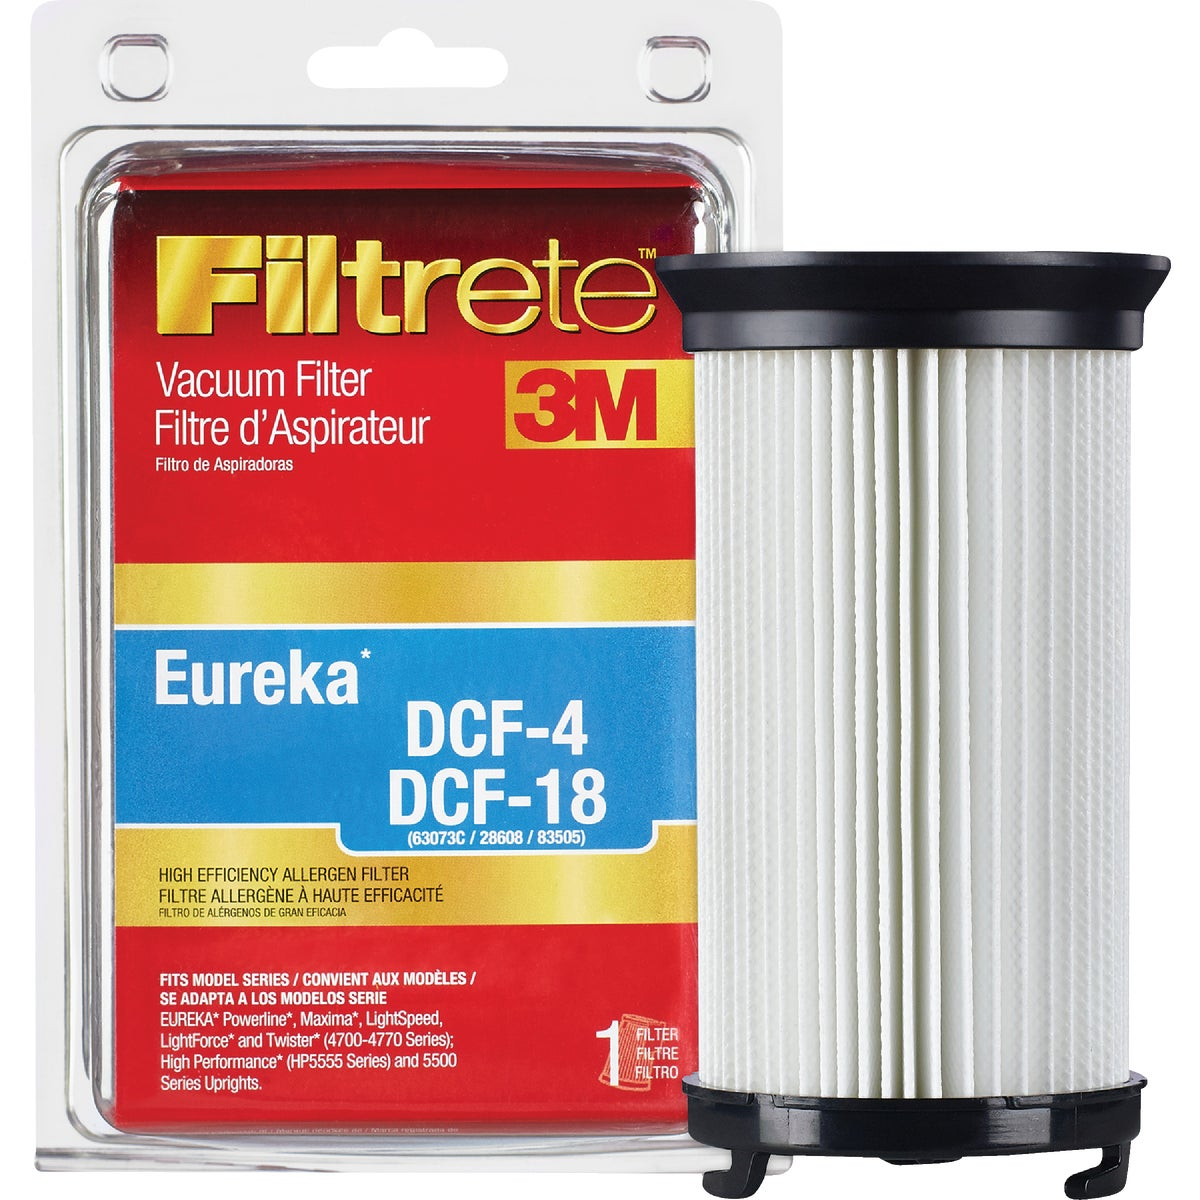 EUREKA HEPA VAC FILTER - 67814A-2 by Electrolux Home Care